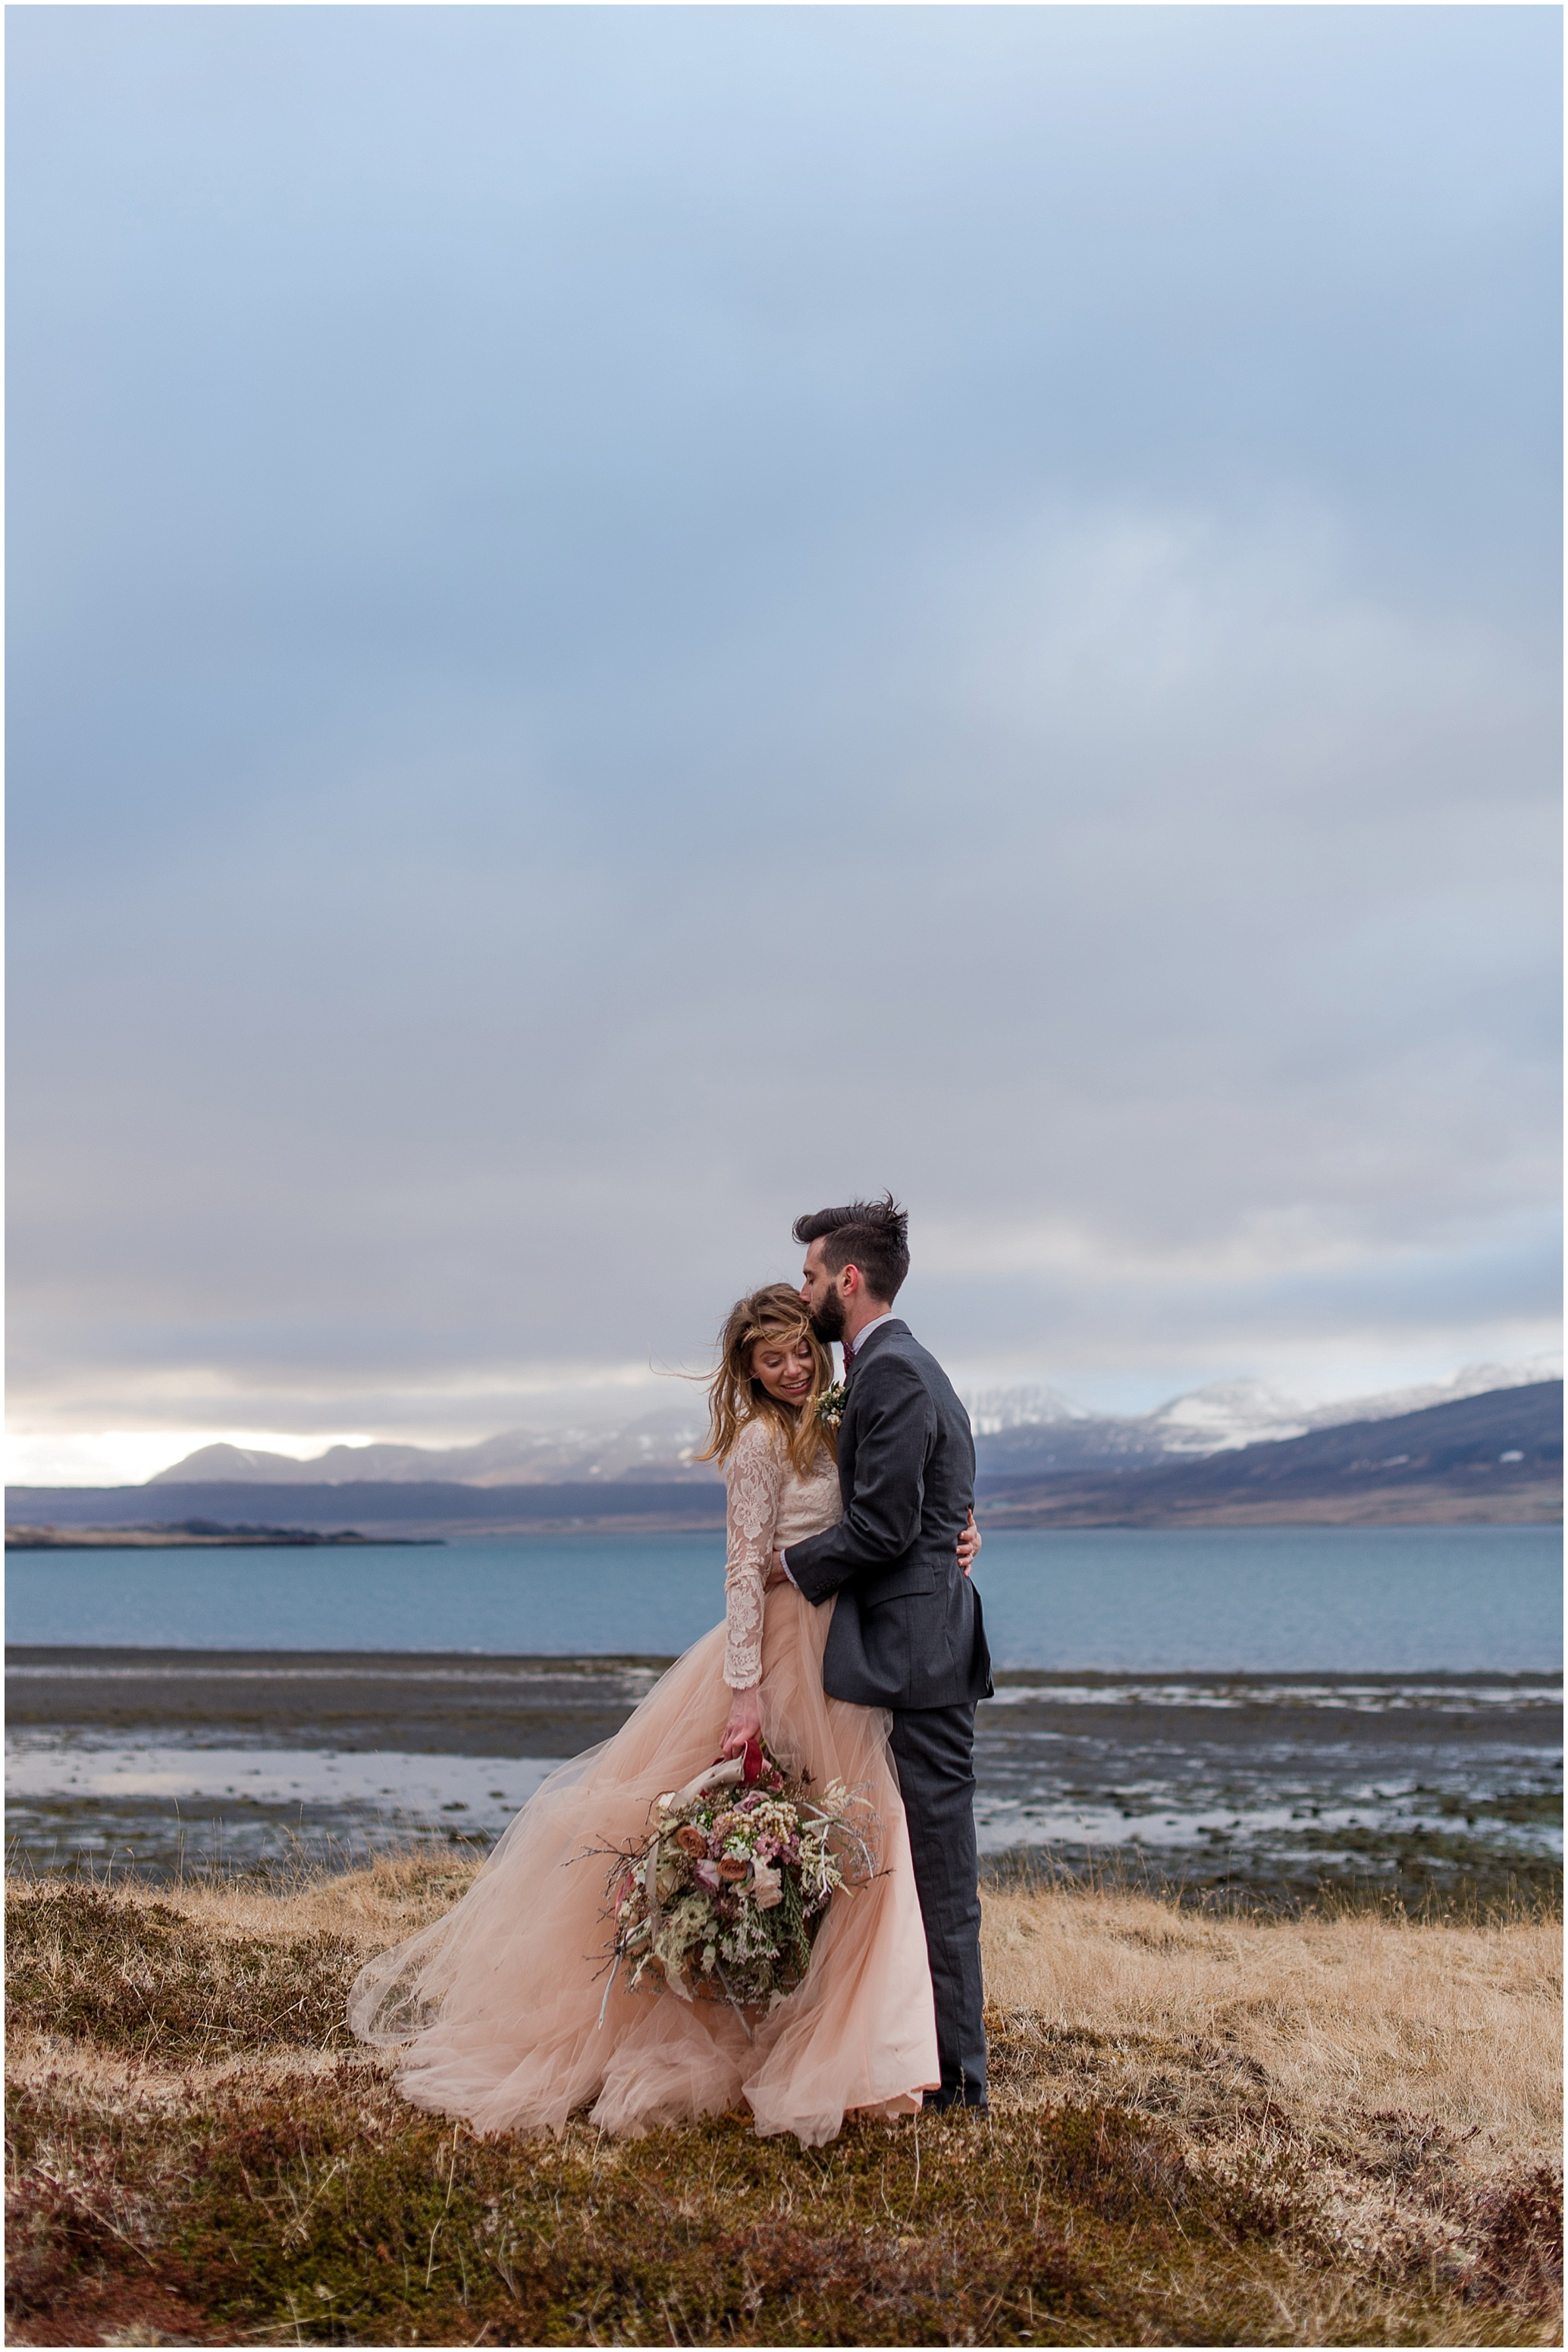 Hannah Leigh Photography Iceland Elopement_2820.jpg